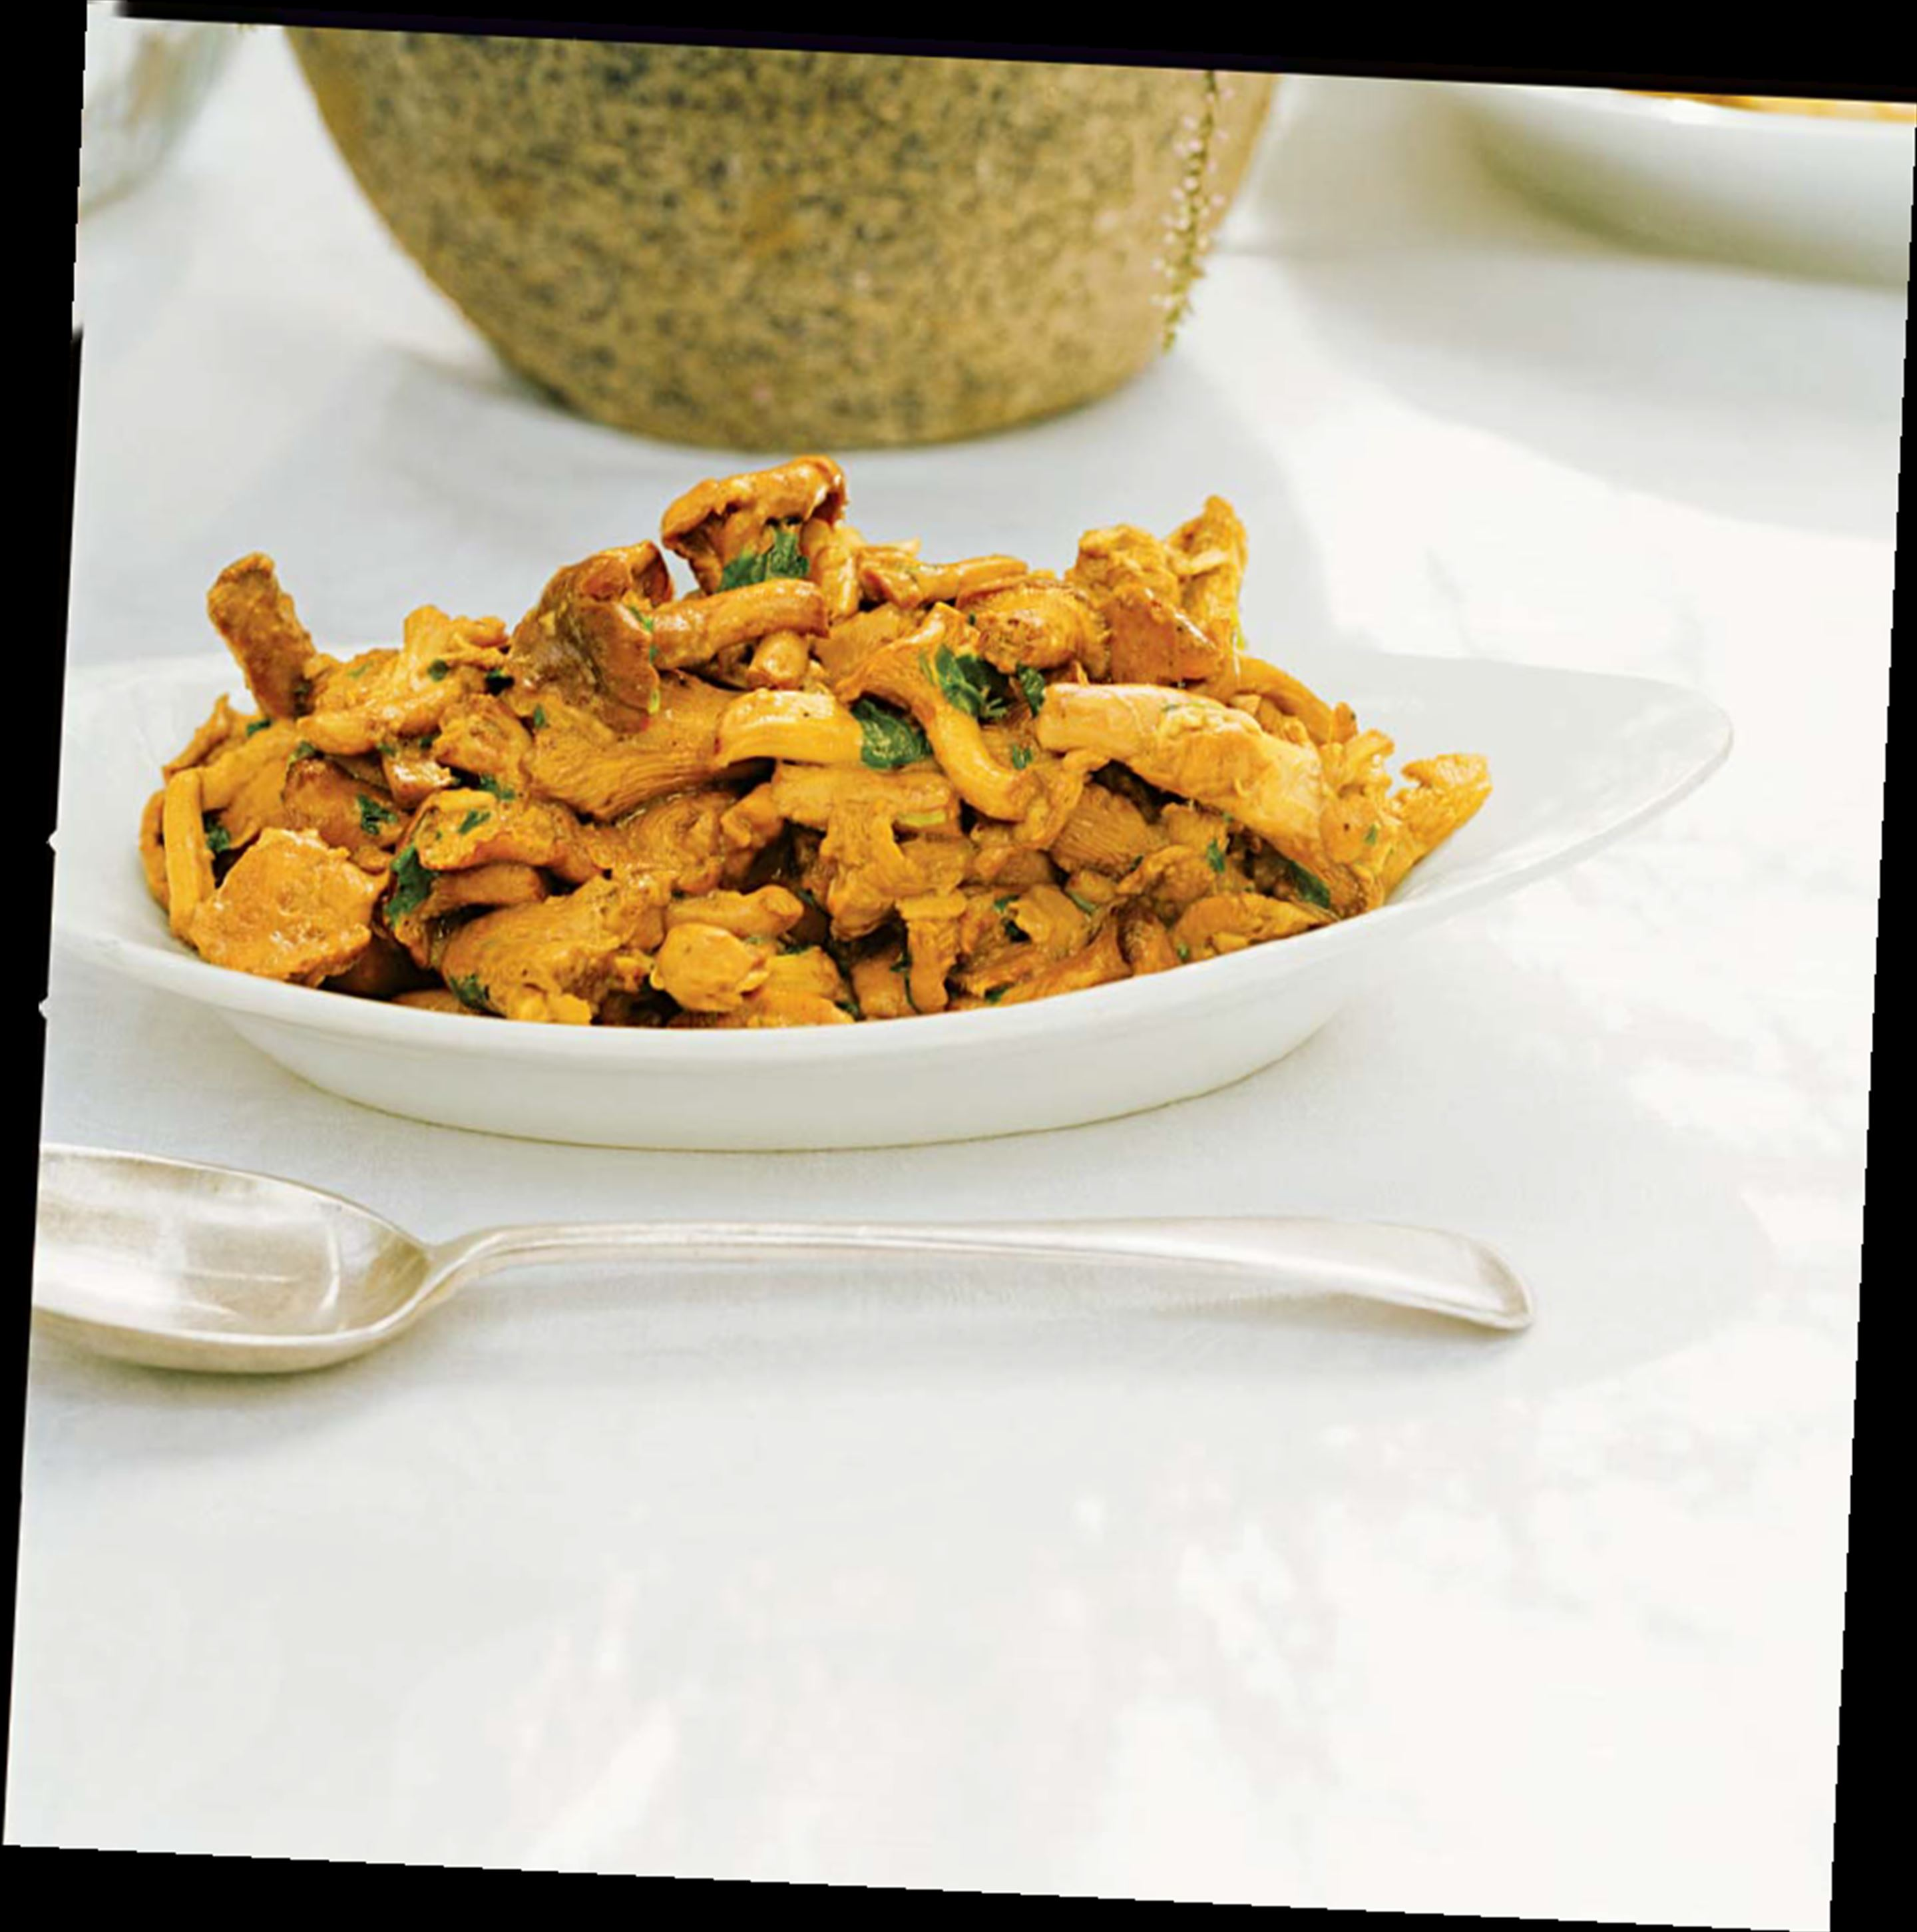 Pan-fried girolles